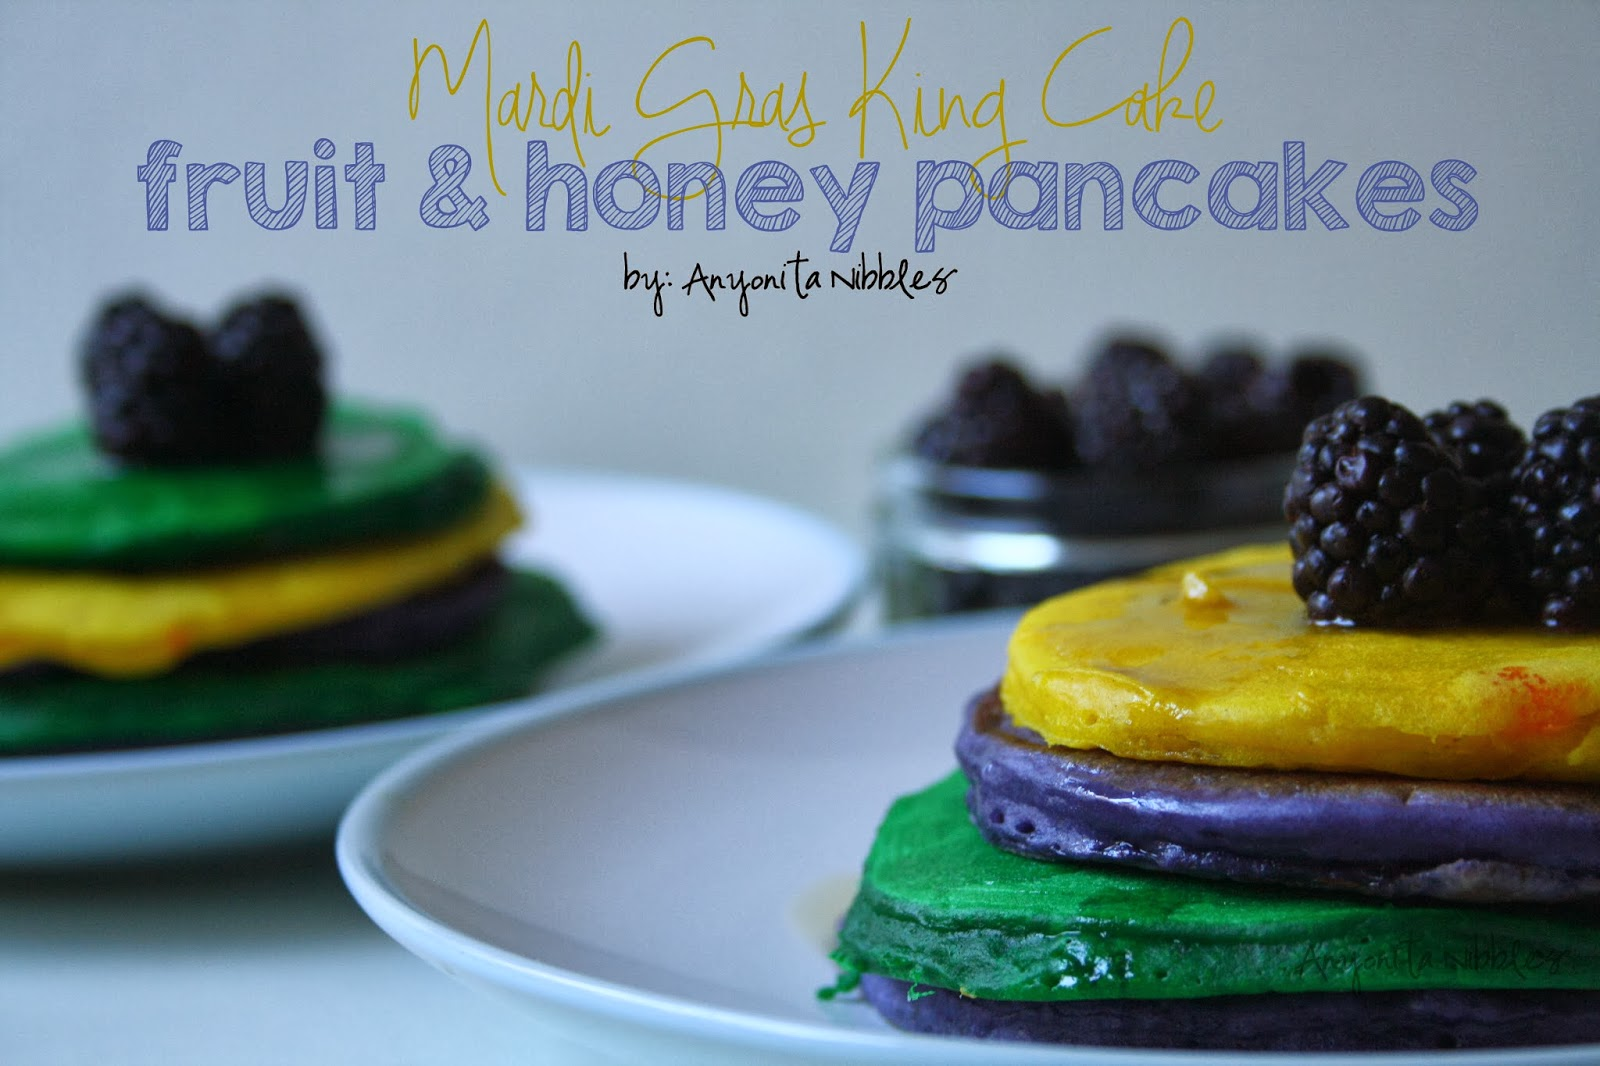 These fun pancakes are a fresh alternative to a Mardi Gras King Cake